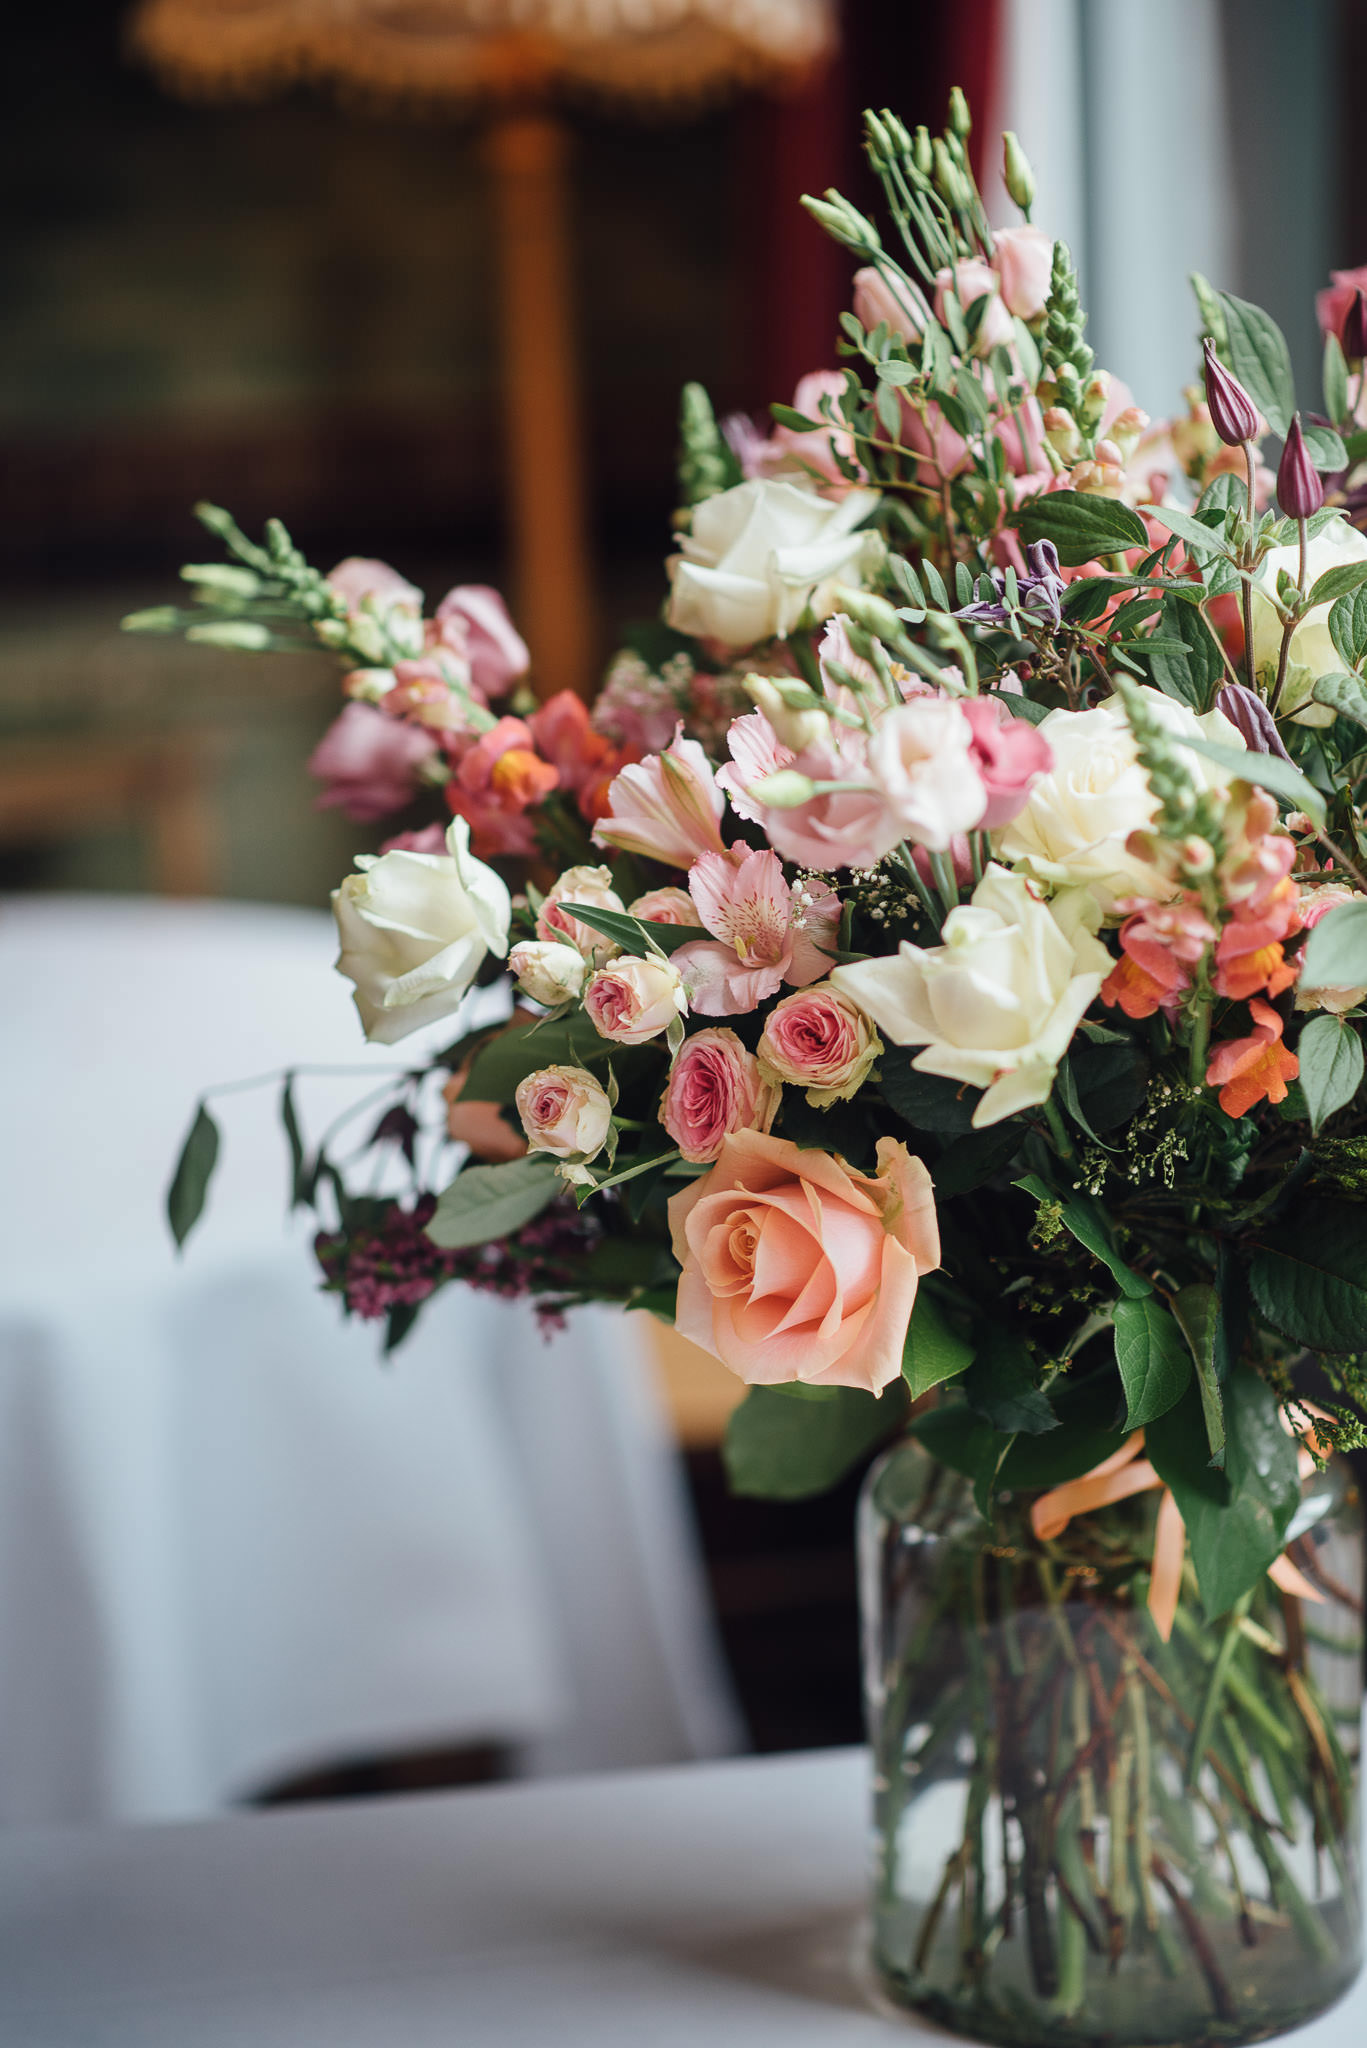 Wedding flowers in stoke newington town hall wedding by creative and alternative london wedding photographer the shannons photography